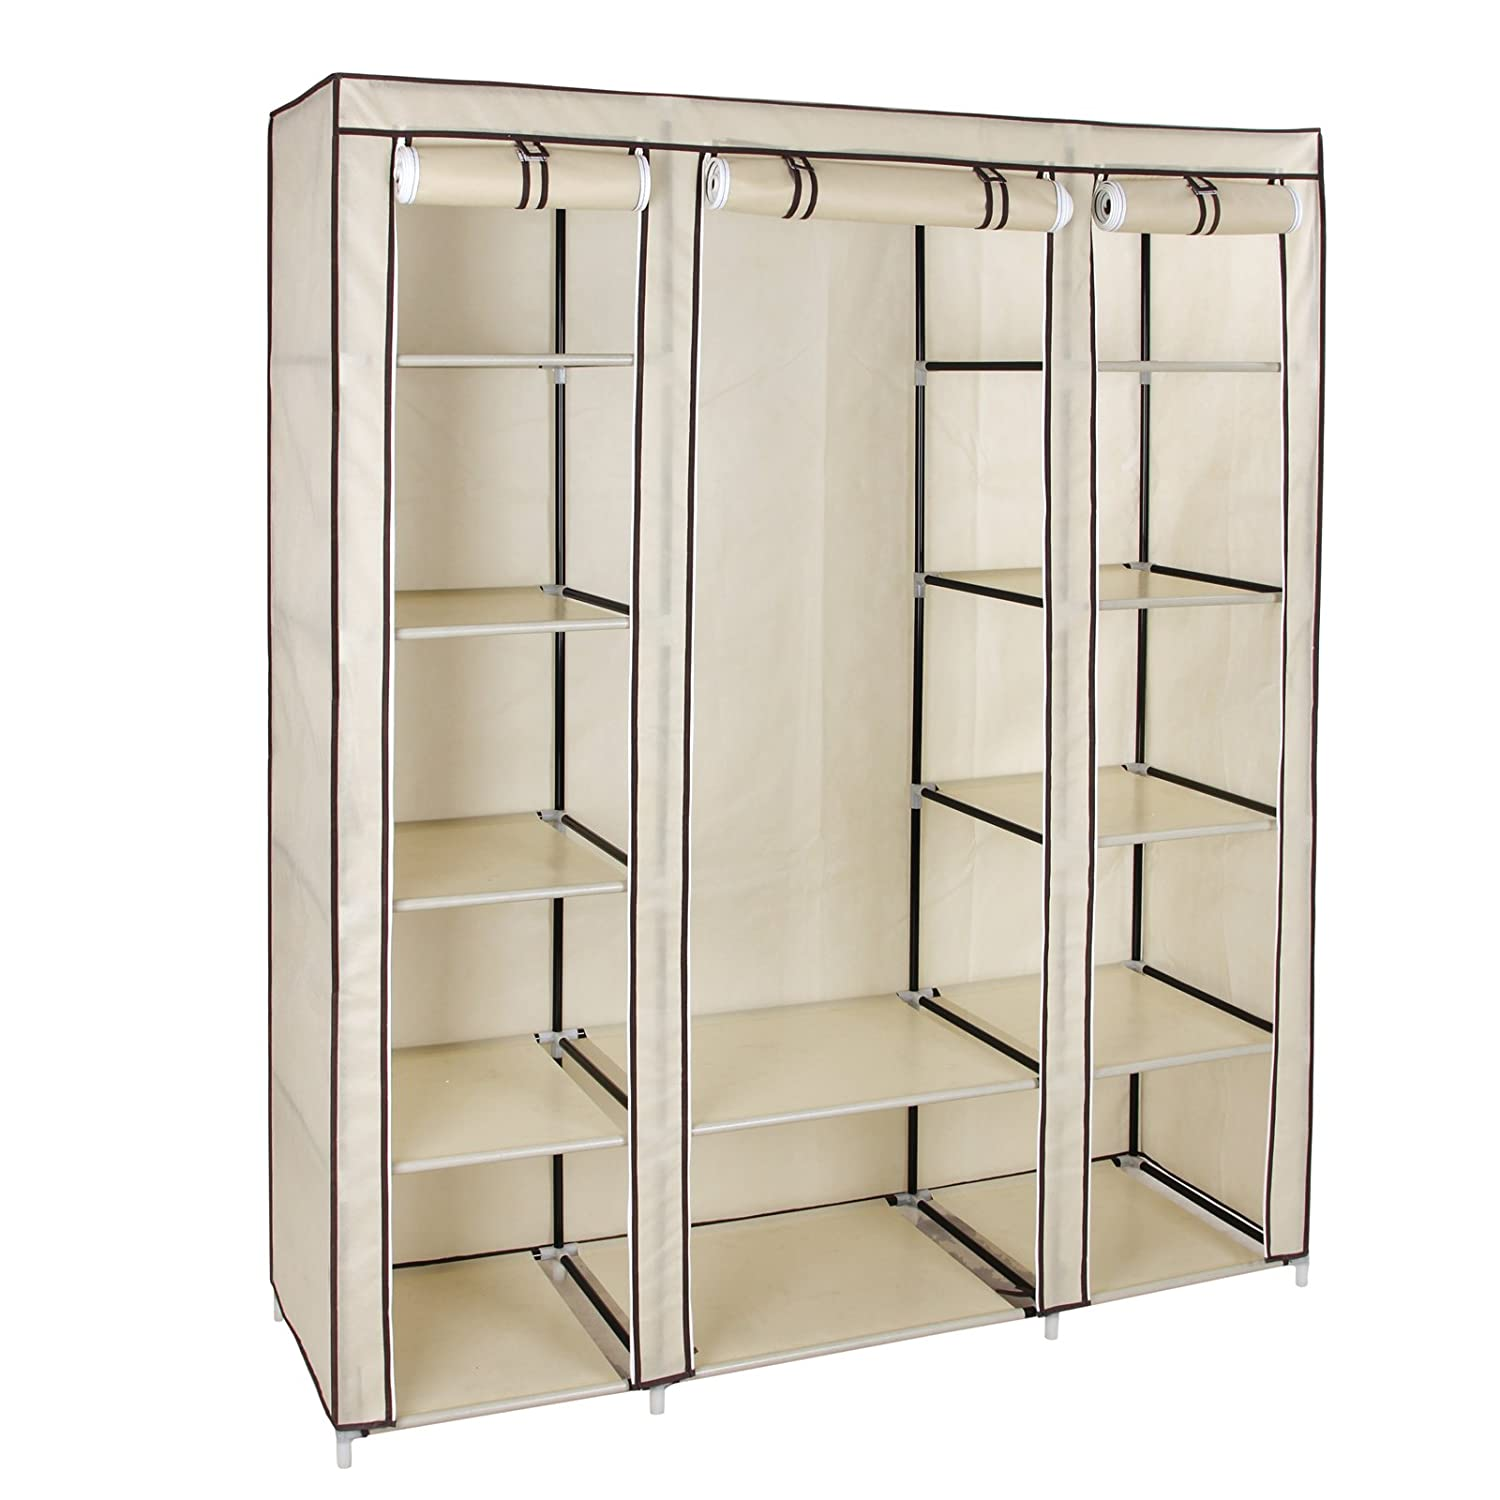 Songmics Non Woven Fabric Wardrobe Cupboard Bedroom Furniture Storage 150 X 45 X 175 Cm Beige Lsf03m